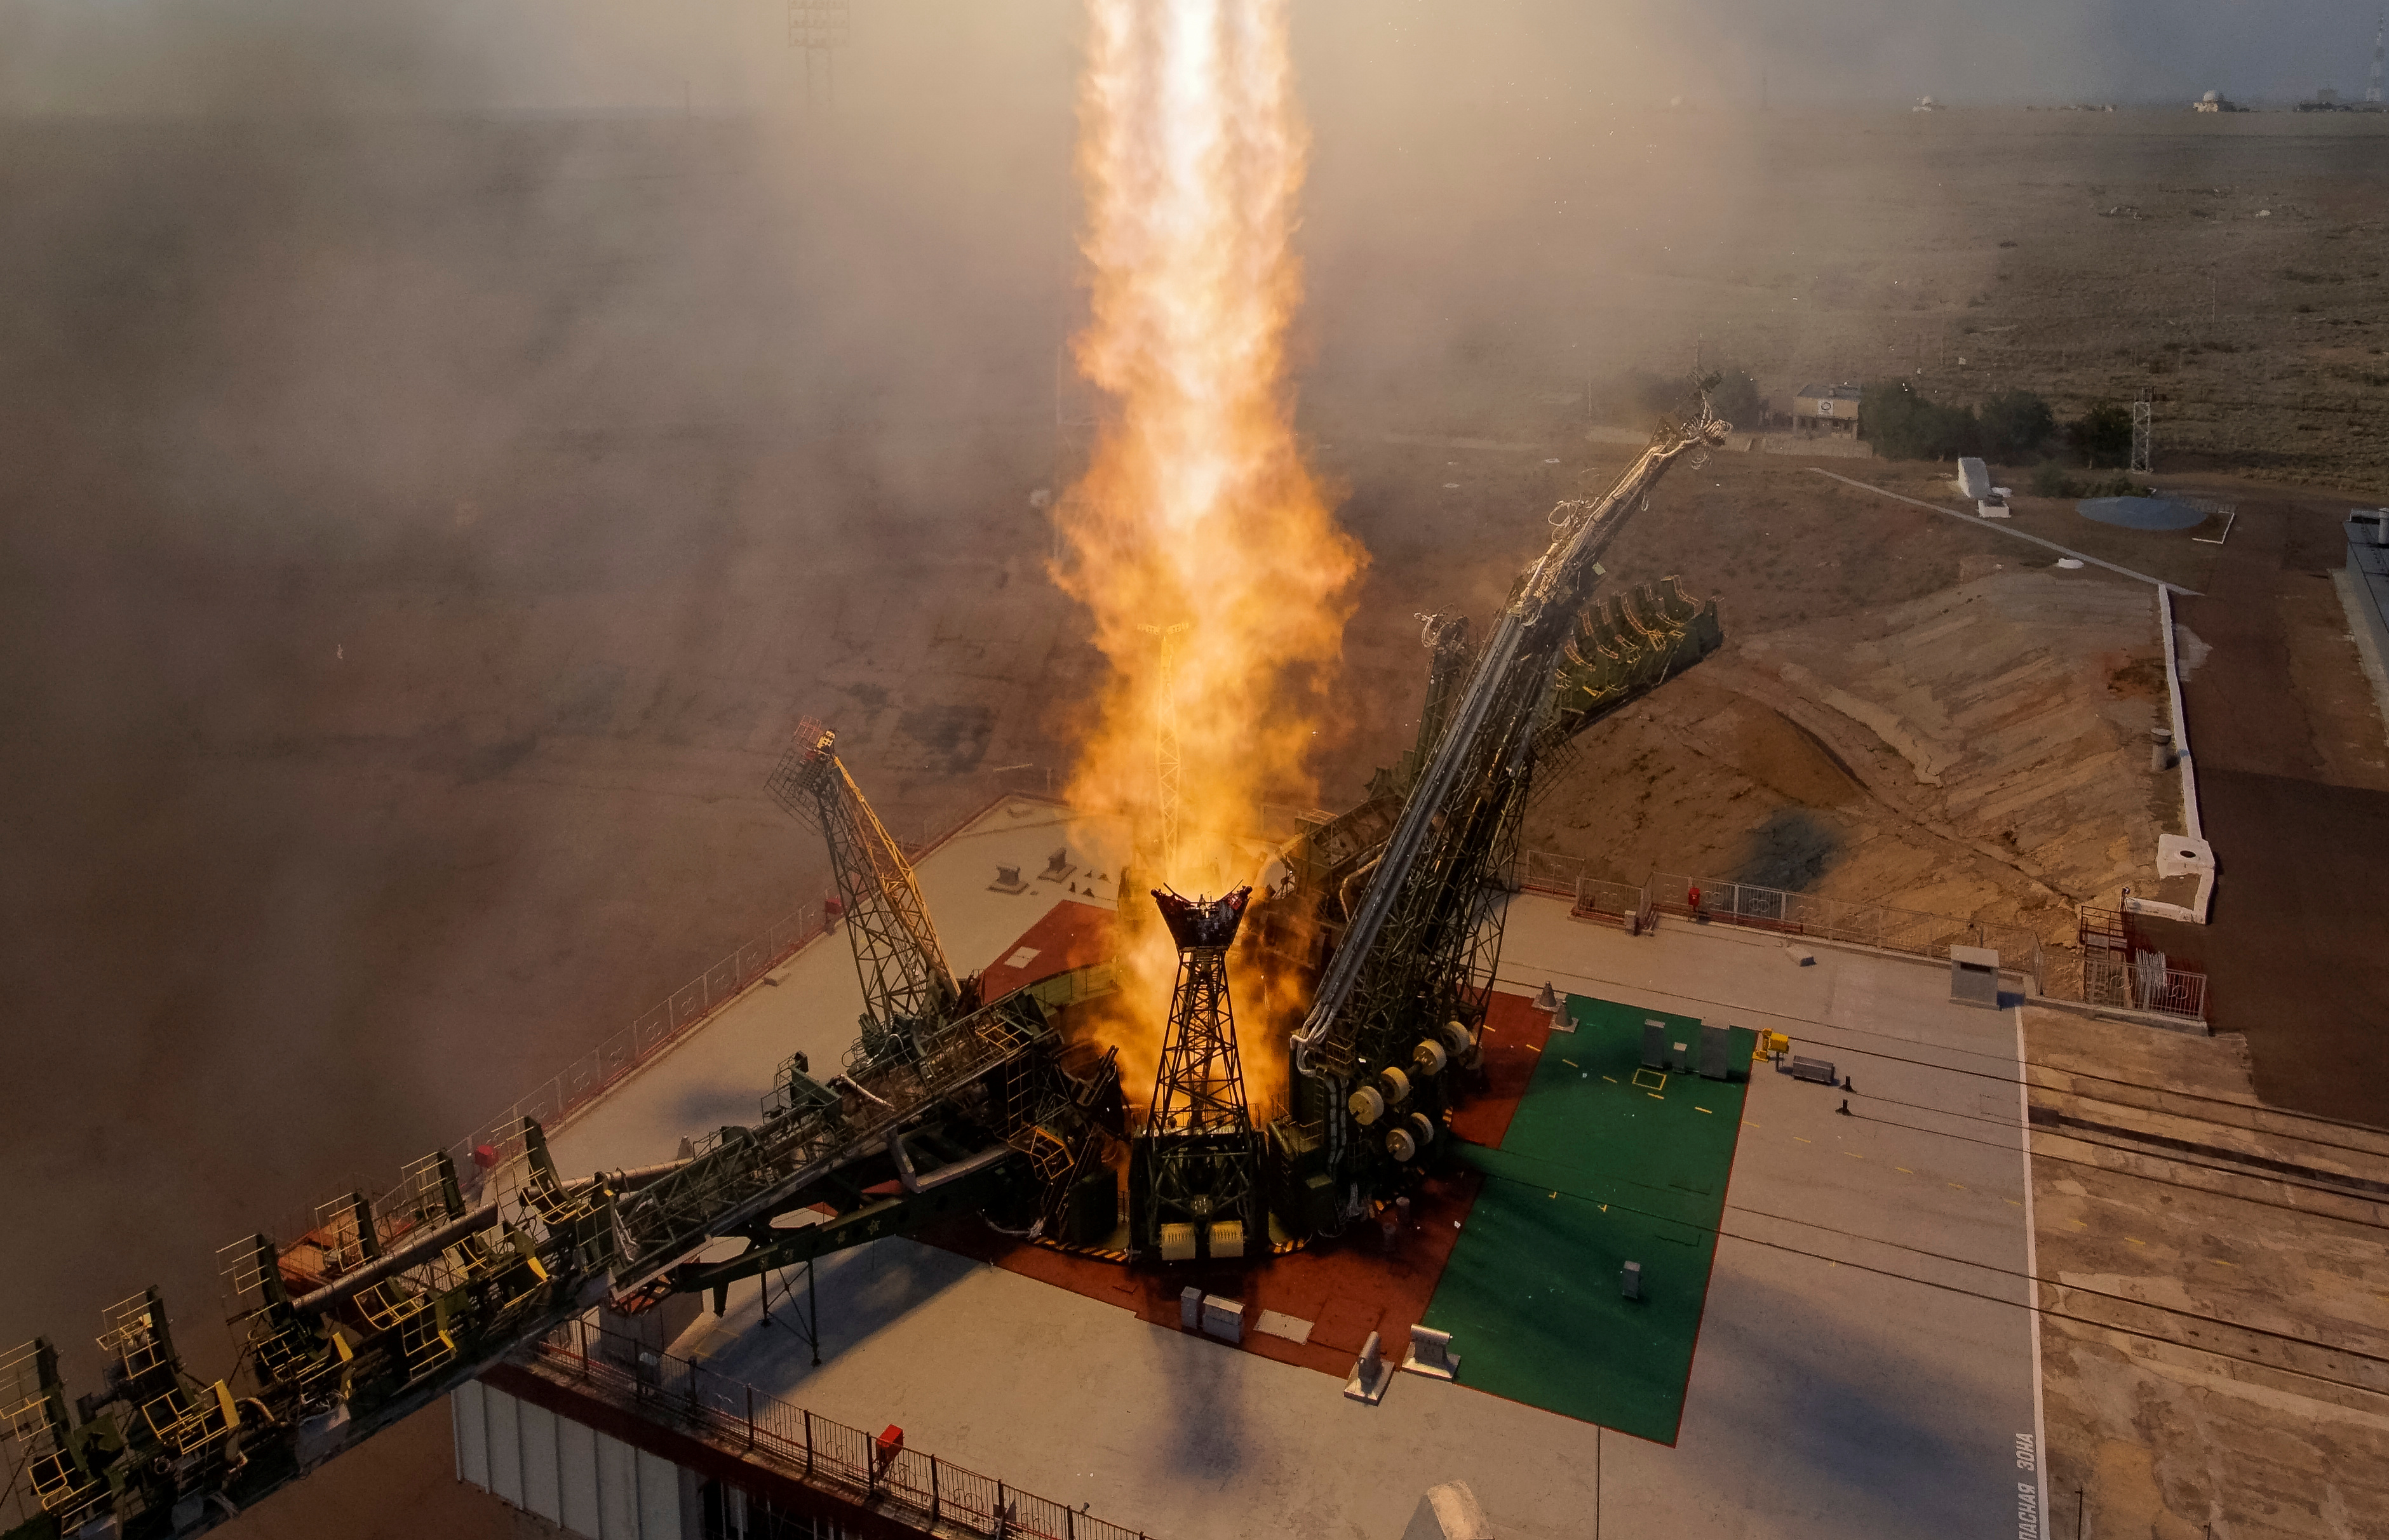 The Soyuz MS spacecraft carrying the crew of Kate Rubins of the U.S., Anatoly Ivanishin of Russia and Takuya Onishi of Japan blasts off to the International Space Station (ISS) from the launchpad at the Baikonur cosmodrome, Kazakhstan